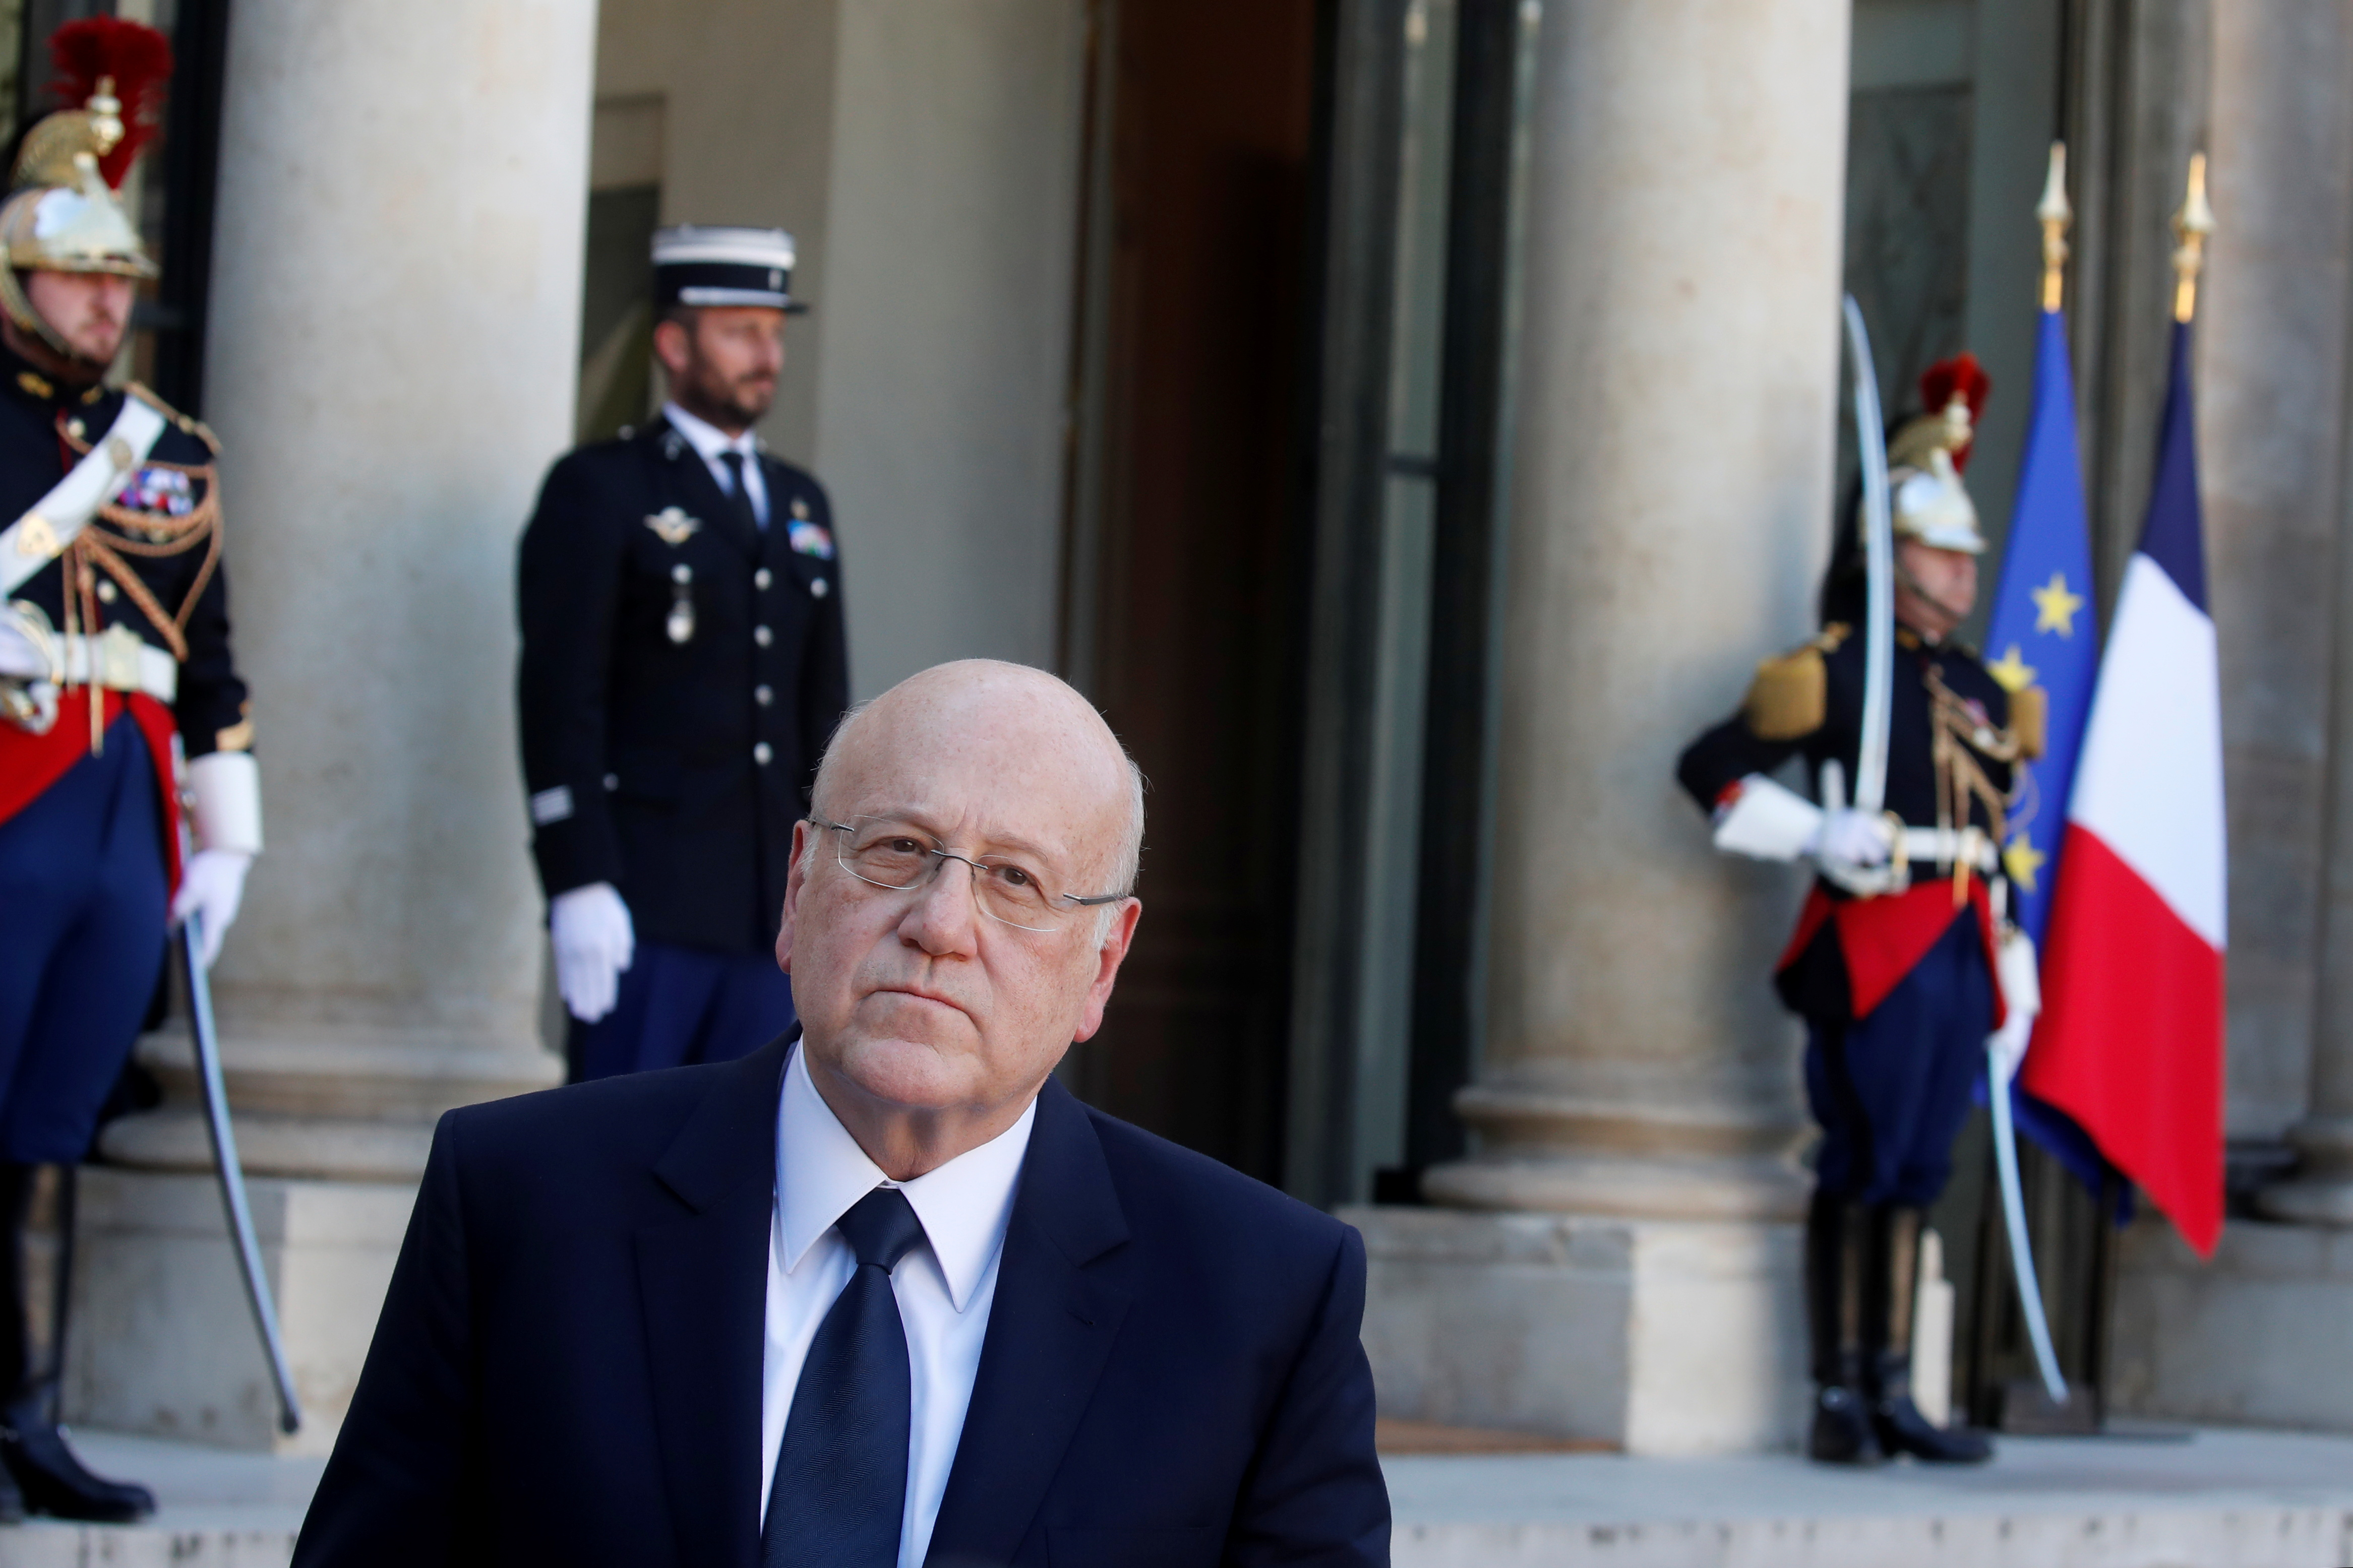 Lebanon's Prime Minister Najib Mikati listens to French President Emmanuel Macron (not seen) as they deliver a joint statement after a working lunch at the Elysee Palace in Paris, France, September 24, 2021. REUTERS/Gonzalo Fuentes